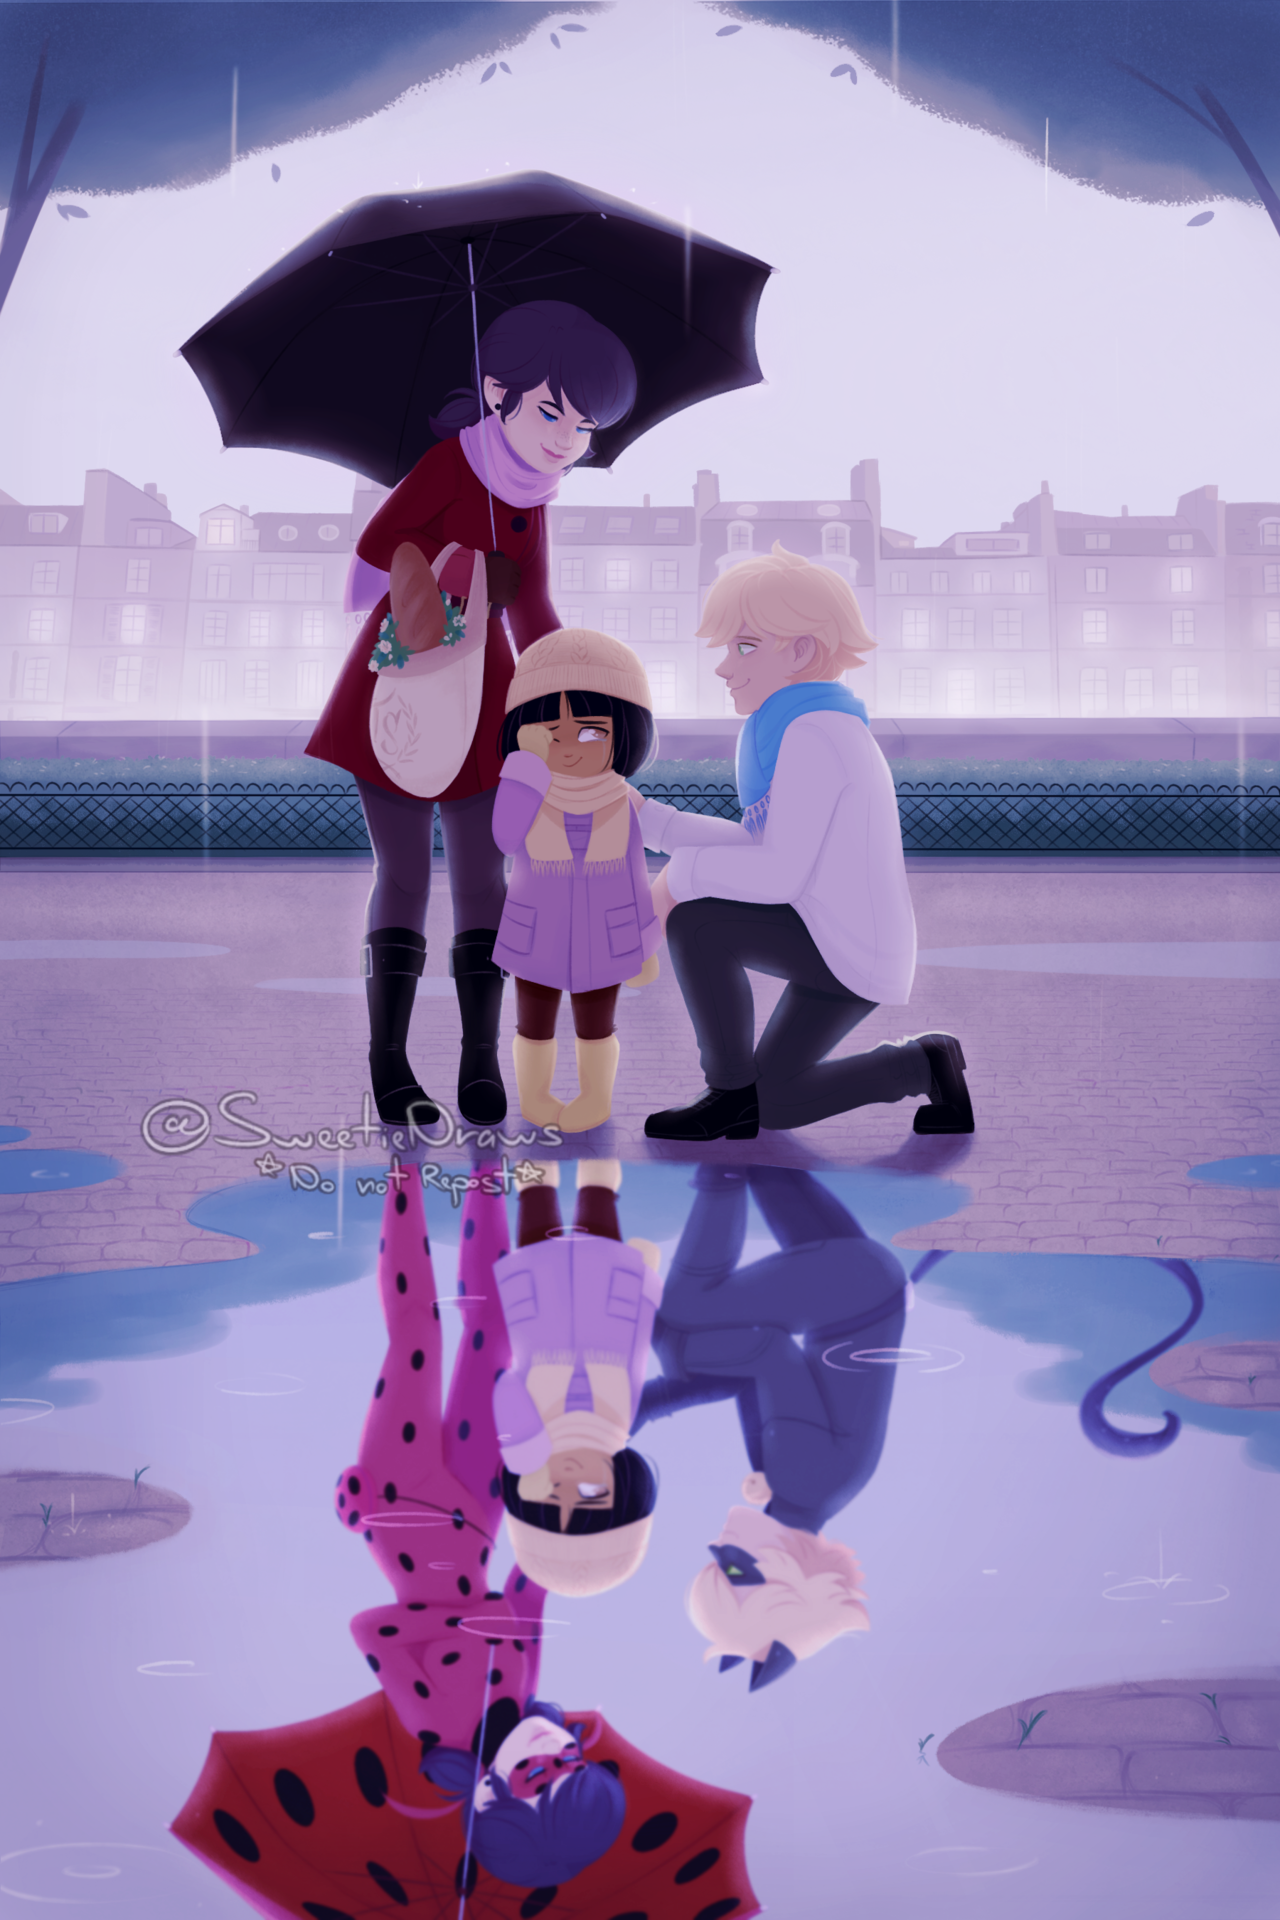 Aww This Is So Cute Imagenes De Miraculous Ladybug Dibujos De Ladybug Y Memes De Miraculous Ladybug Don't let the philistines get you down, peppa. pinterest